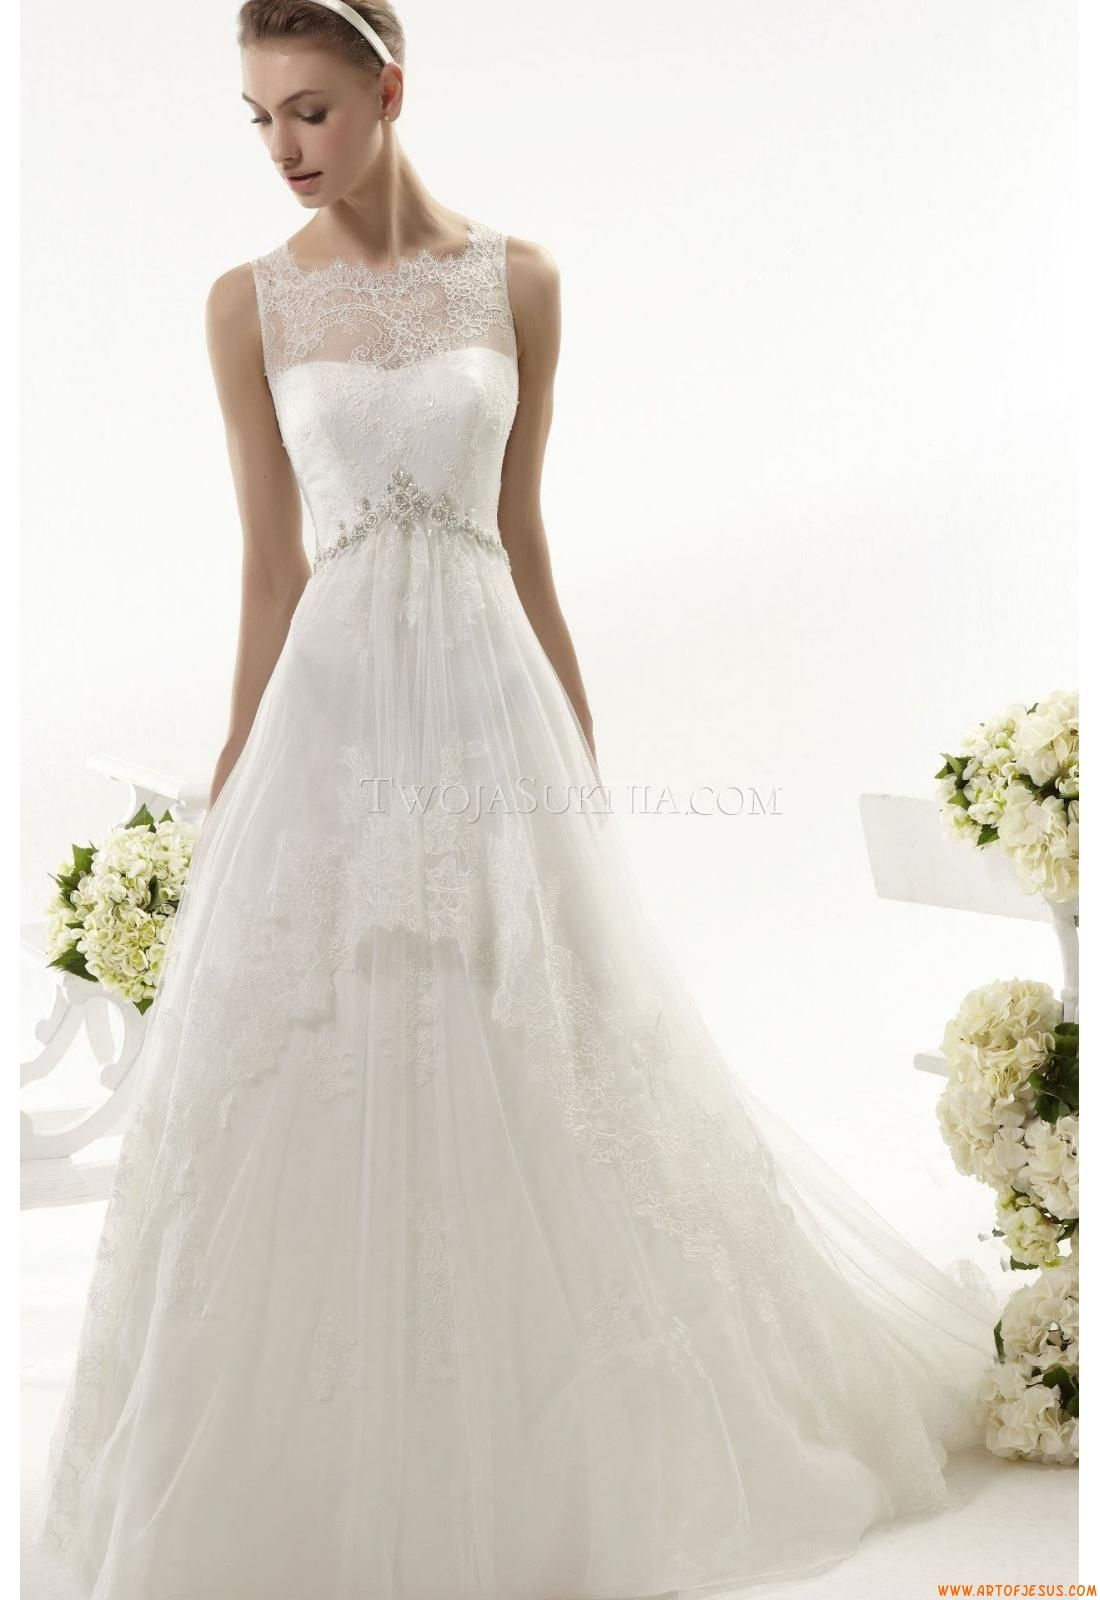 Wedding dresses aire barcelona yauris vintage not getting